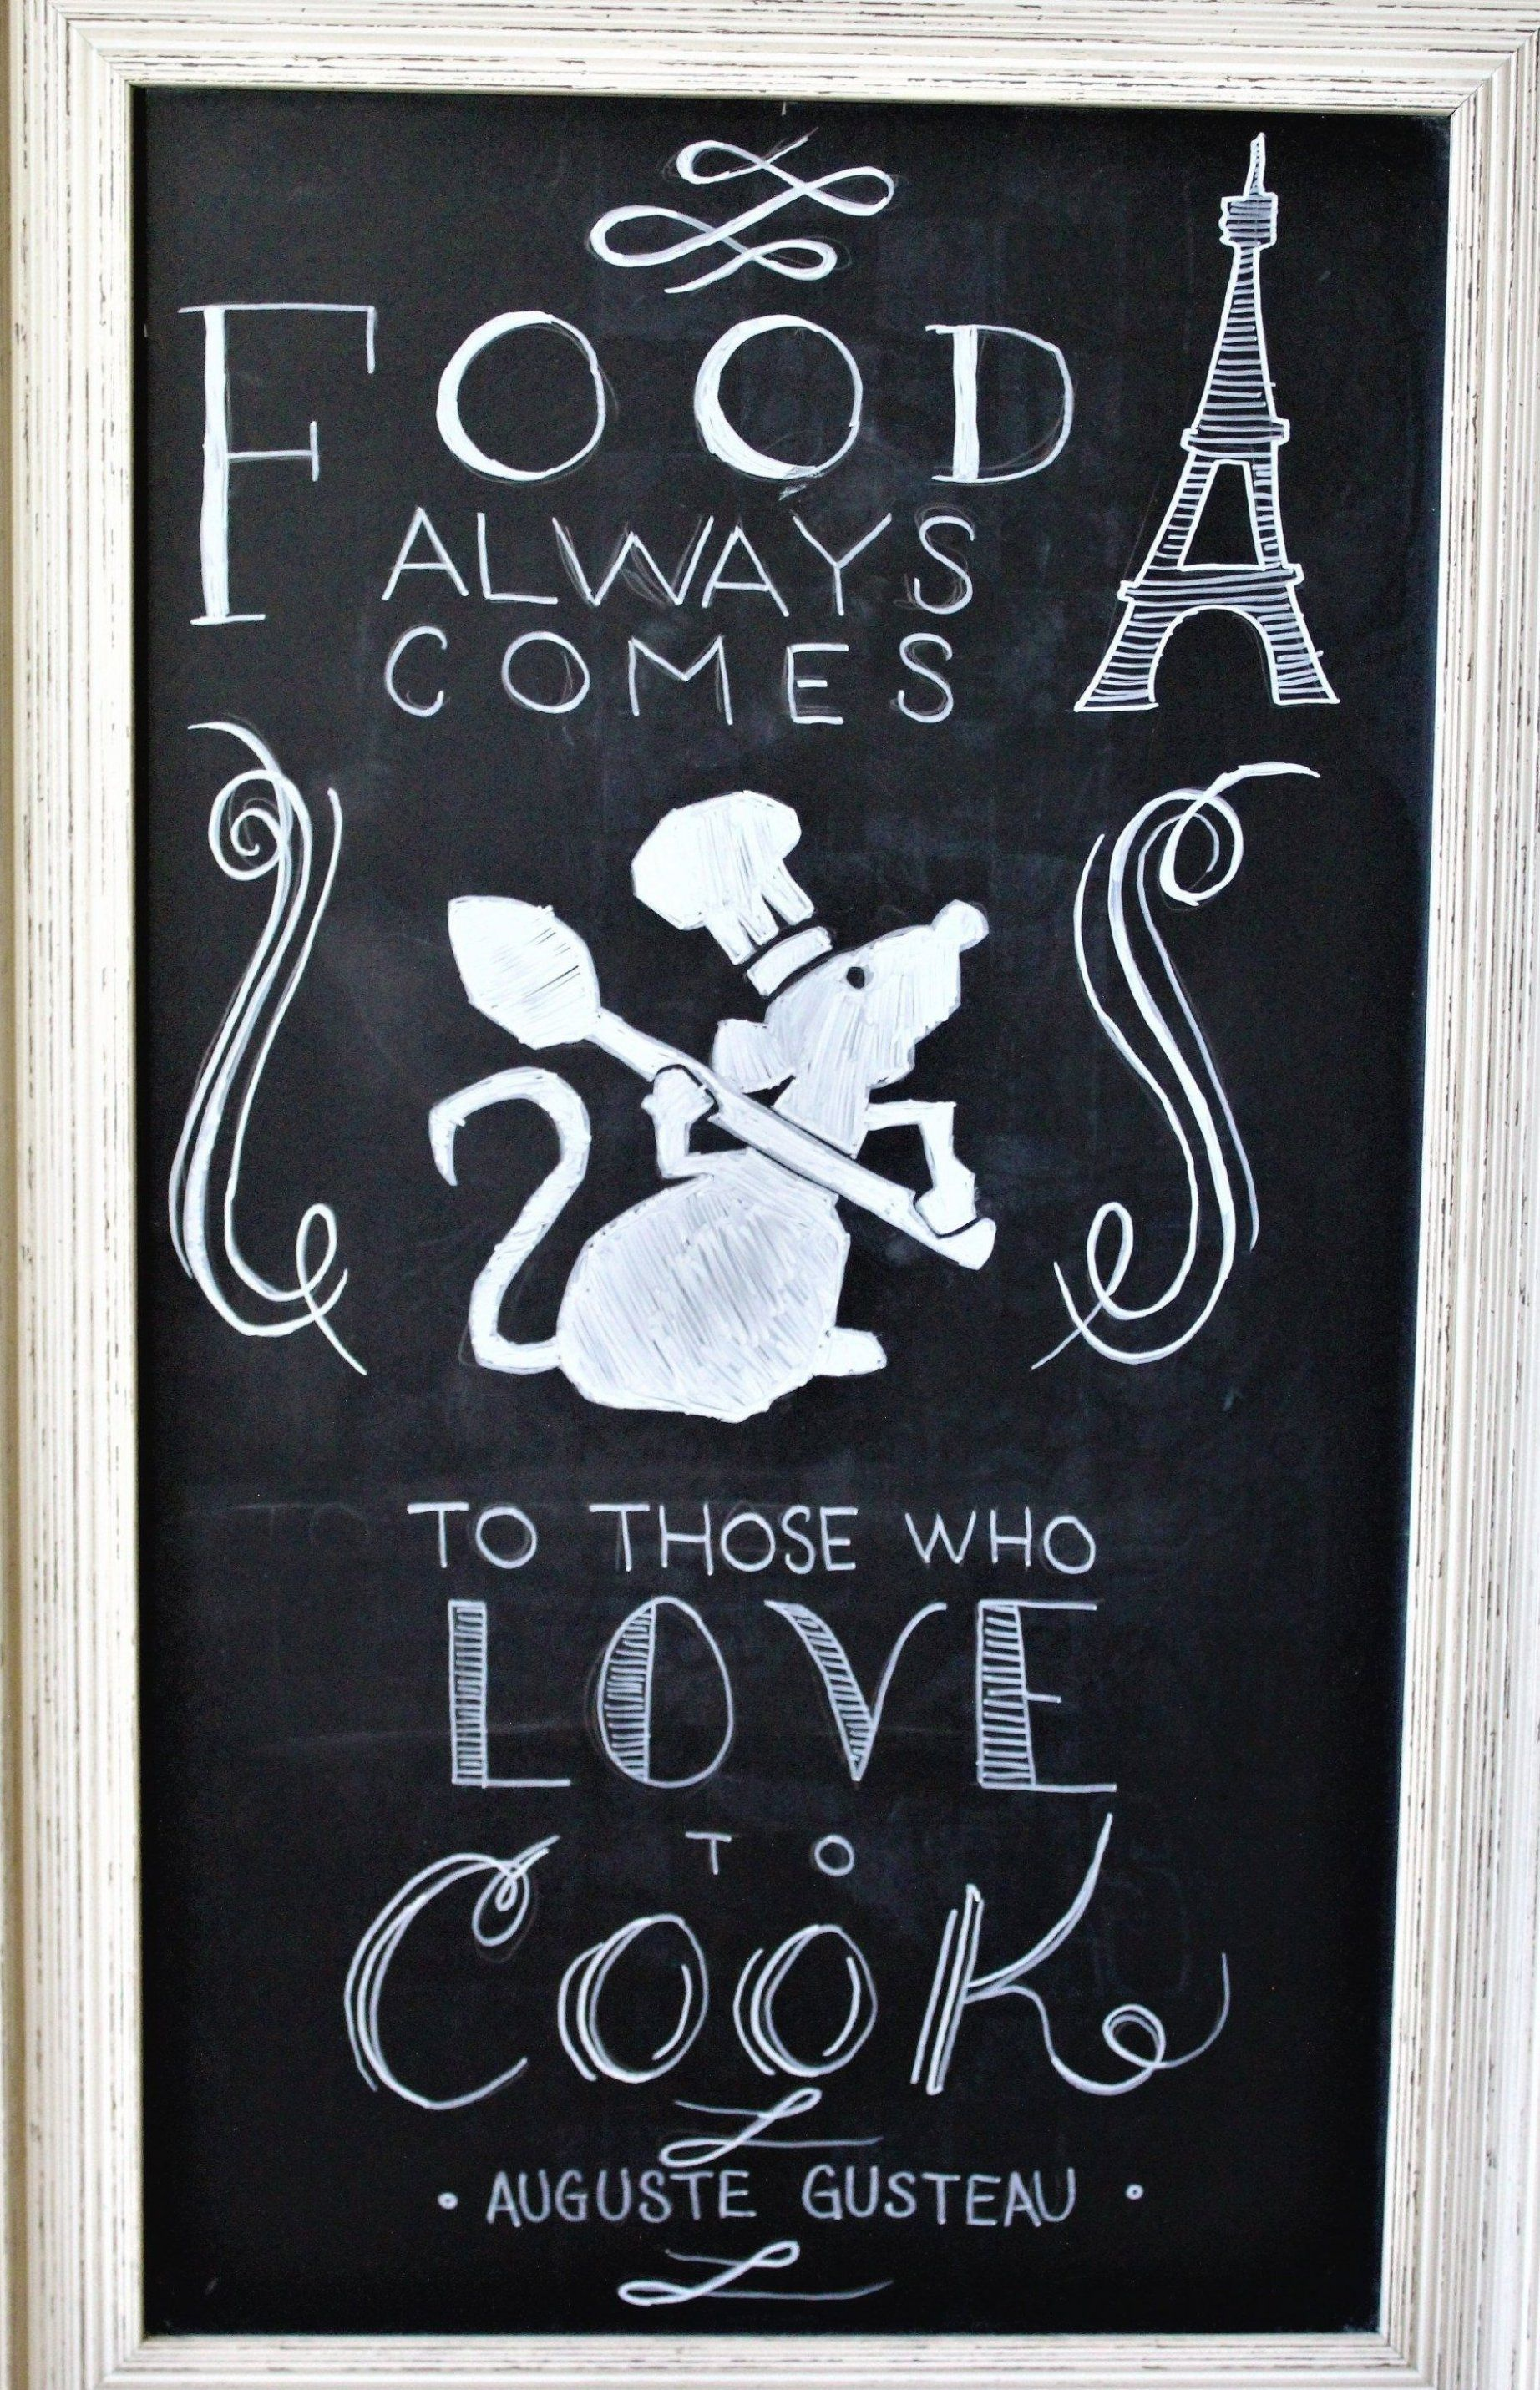 Celebrate The 10th Anniversary Of Disney Pixar Ratatouille With A Video Step By Step On Creating A Chef Remy Ch In 2020 Disney Decor Chalkboard Art Disney Home Decor